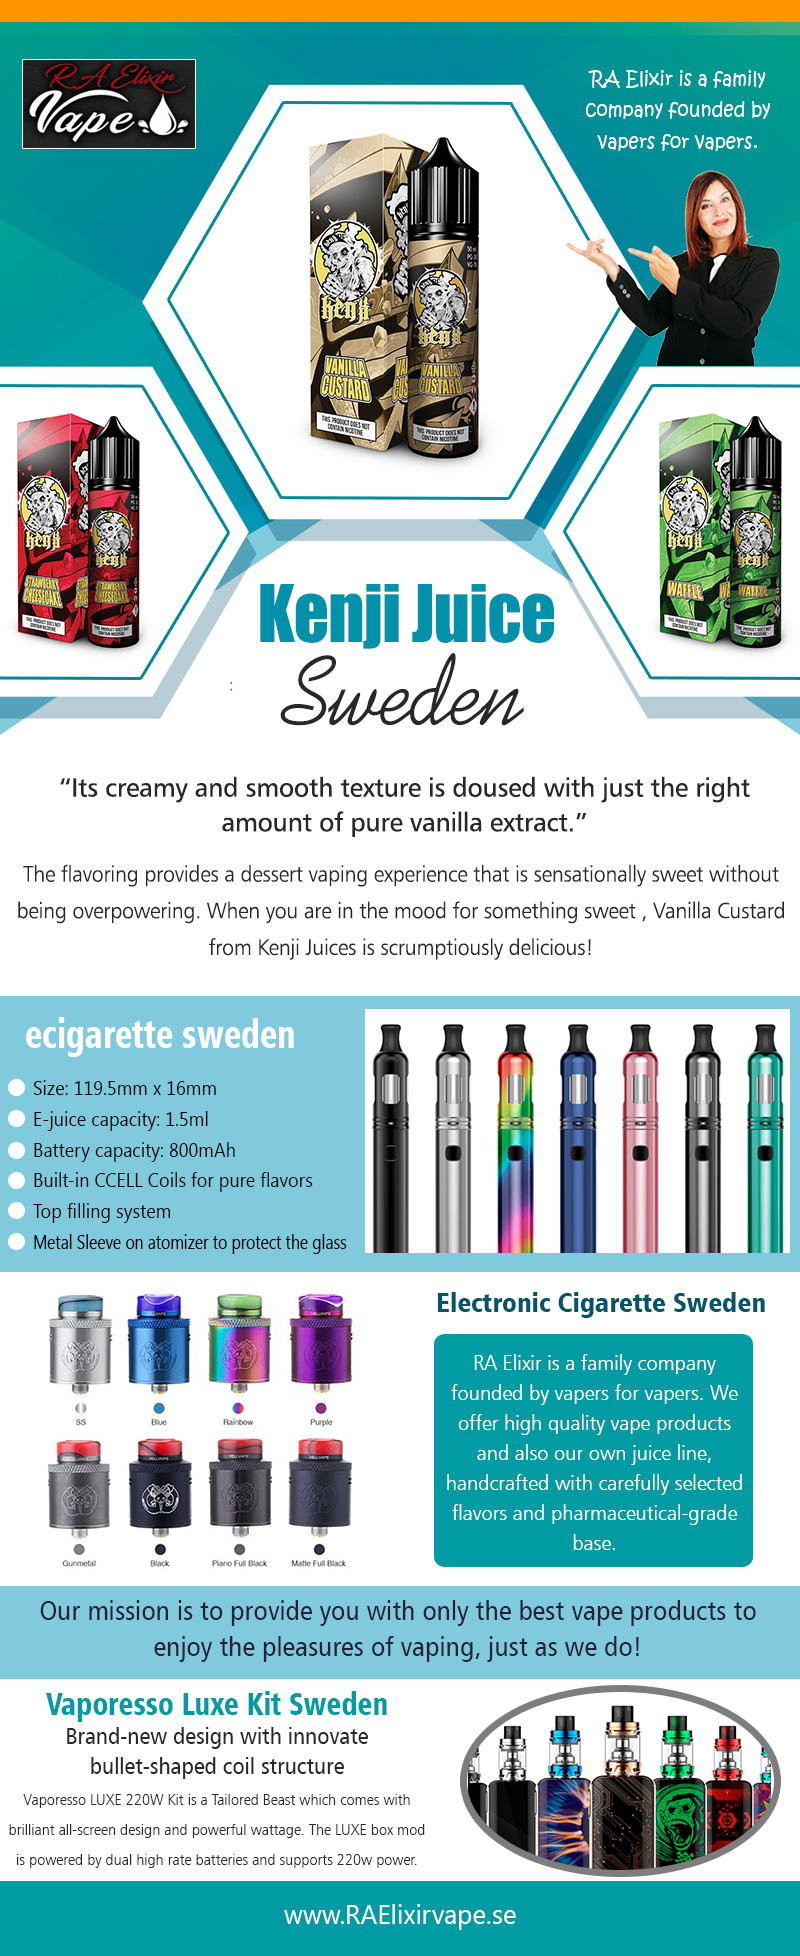 Kenji Juice Sweden